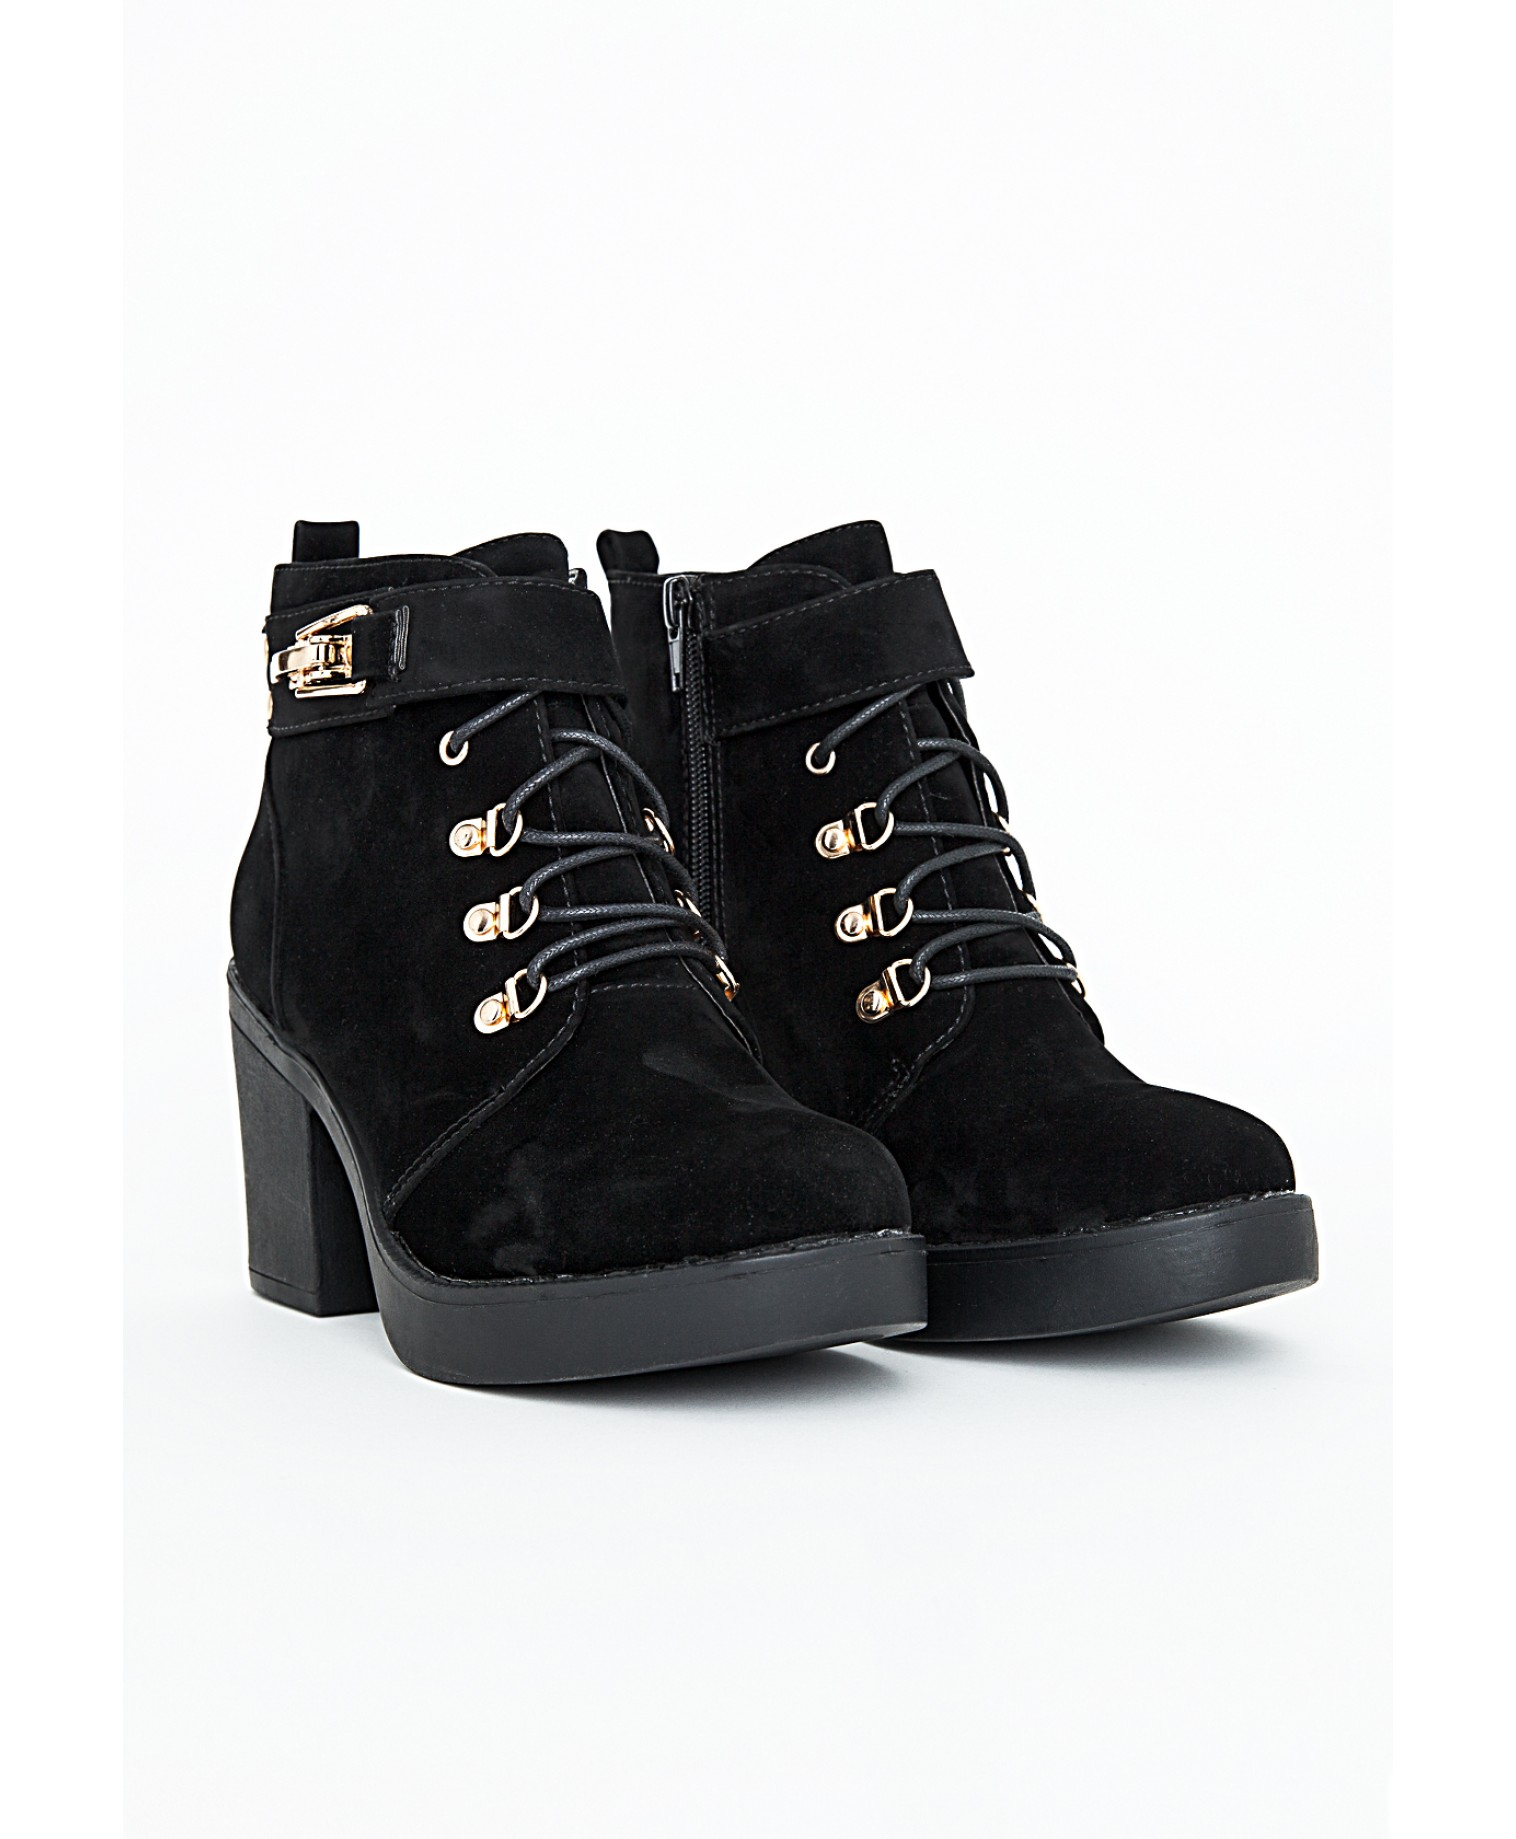 Felisimina black suede ankle boots with buckle detail 1